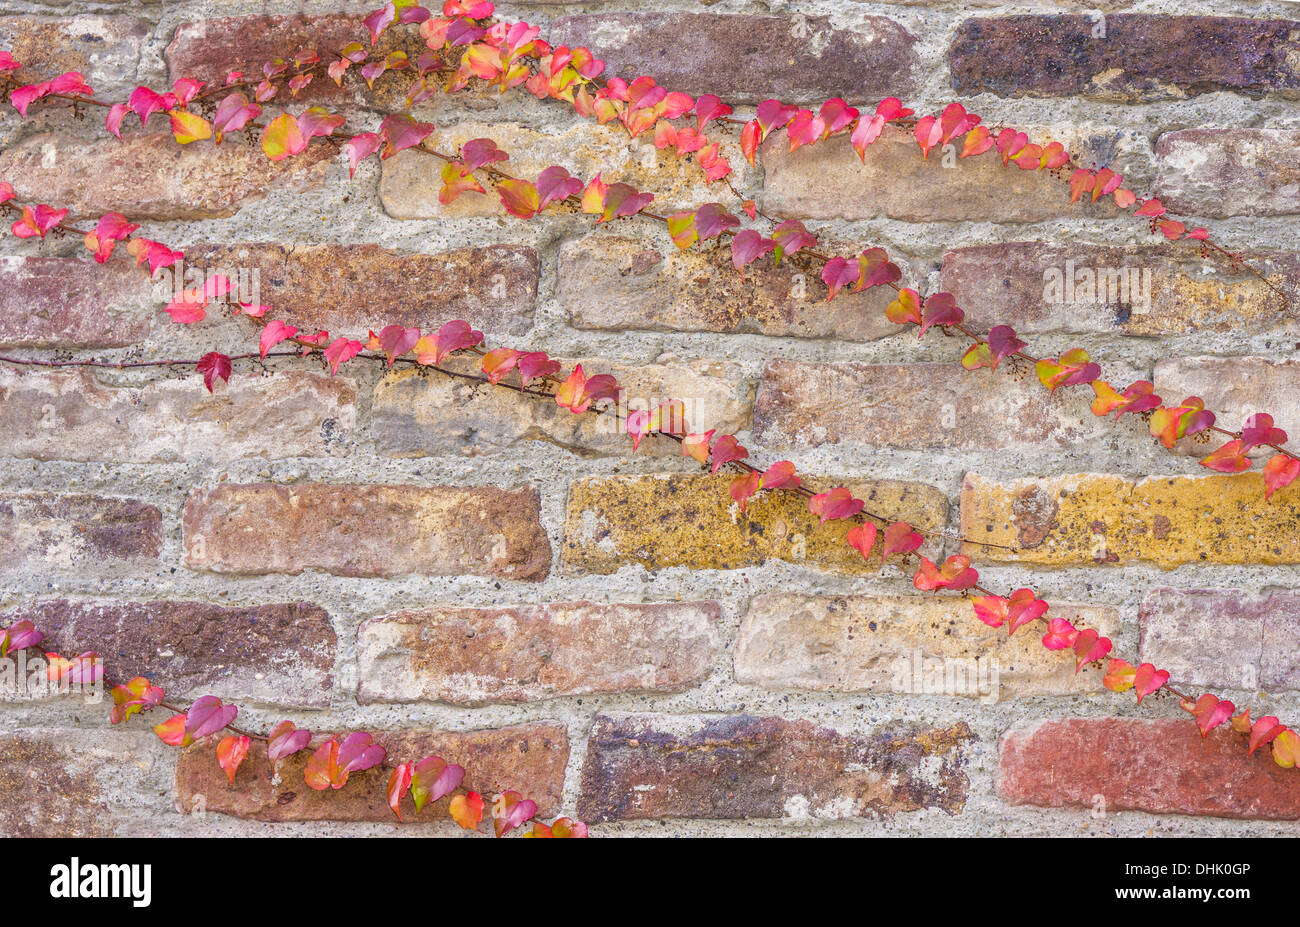 red, yellow and violet tinged ivy tendrils on an old brick wall - Stock Image